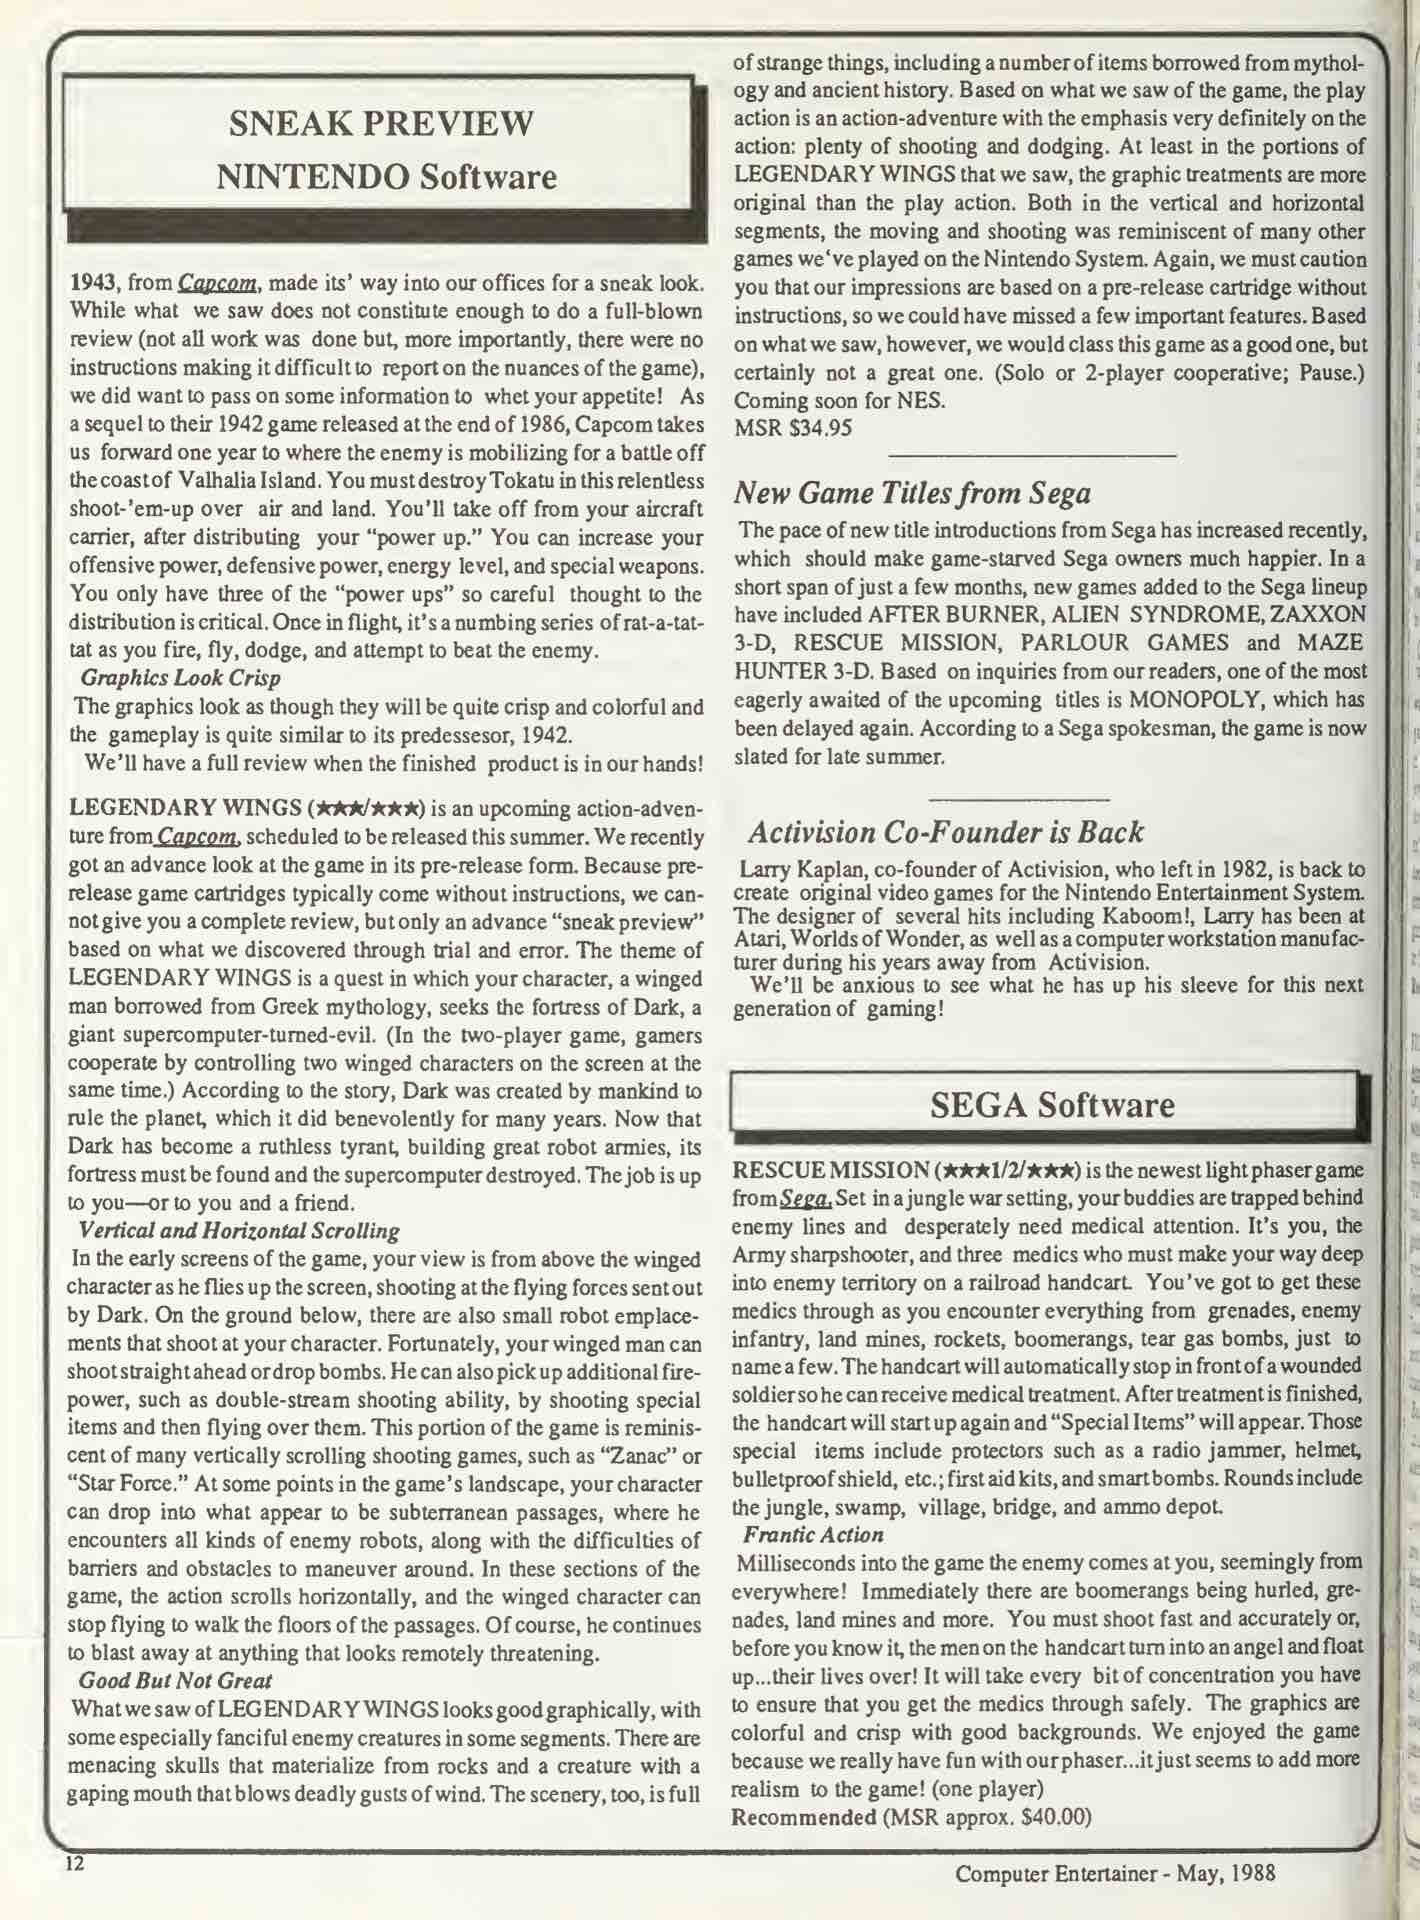 Computer Entertainer - May 1988 - pg 12